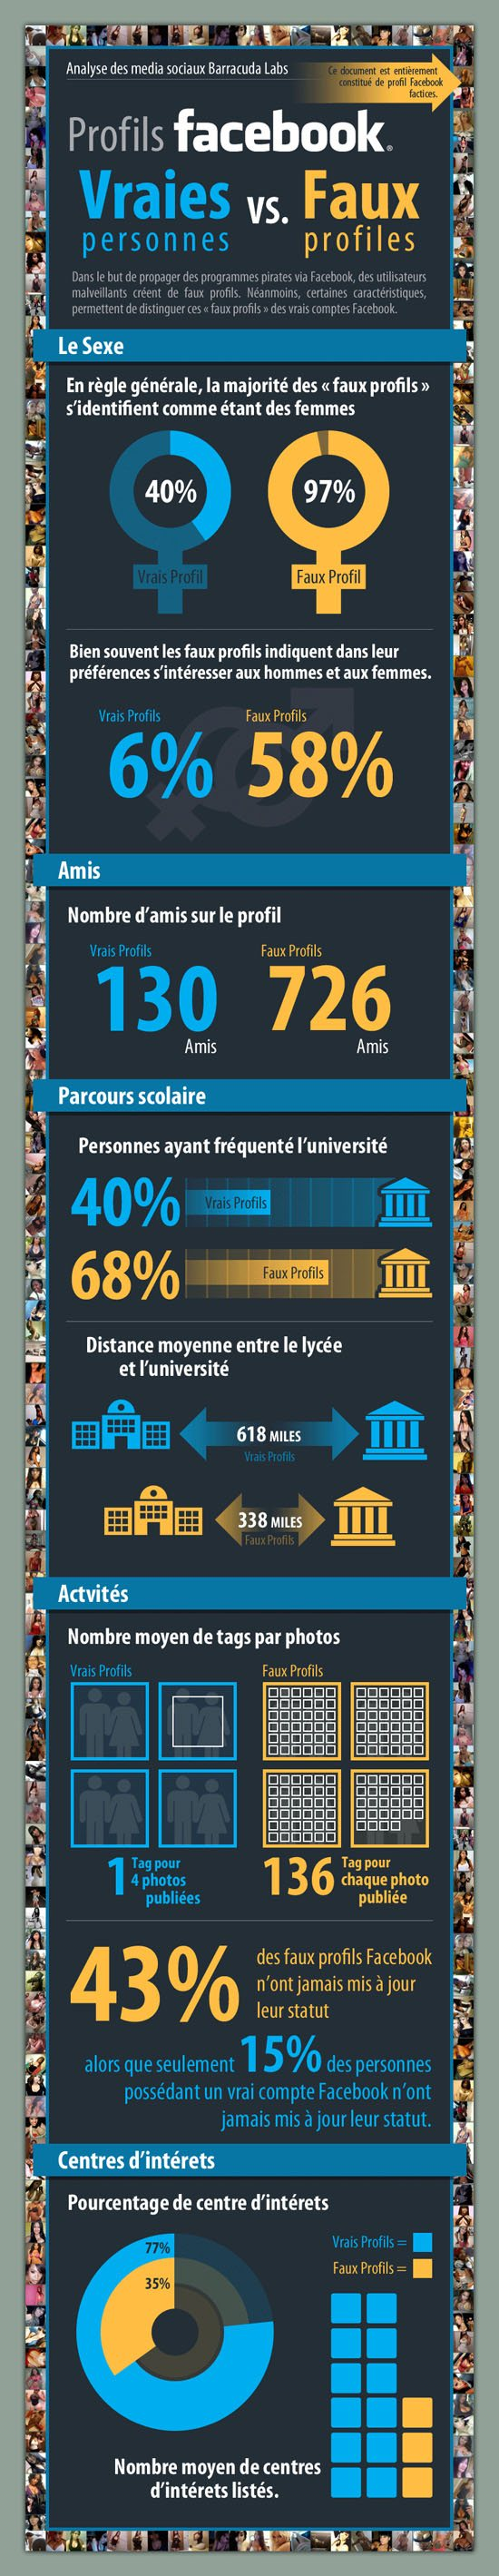 Infographie : attention aux faux profils sur Facebook !